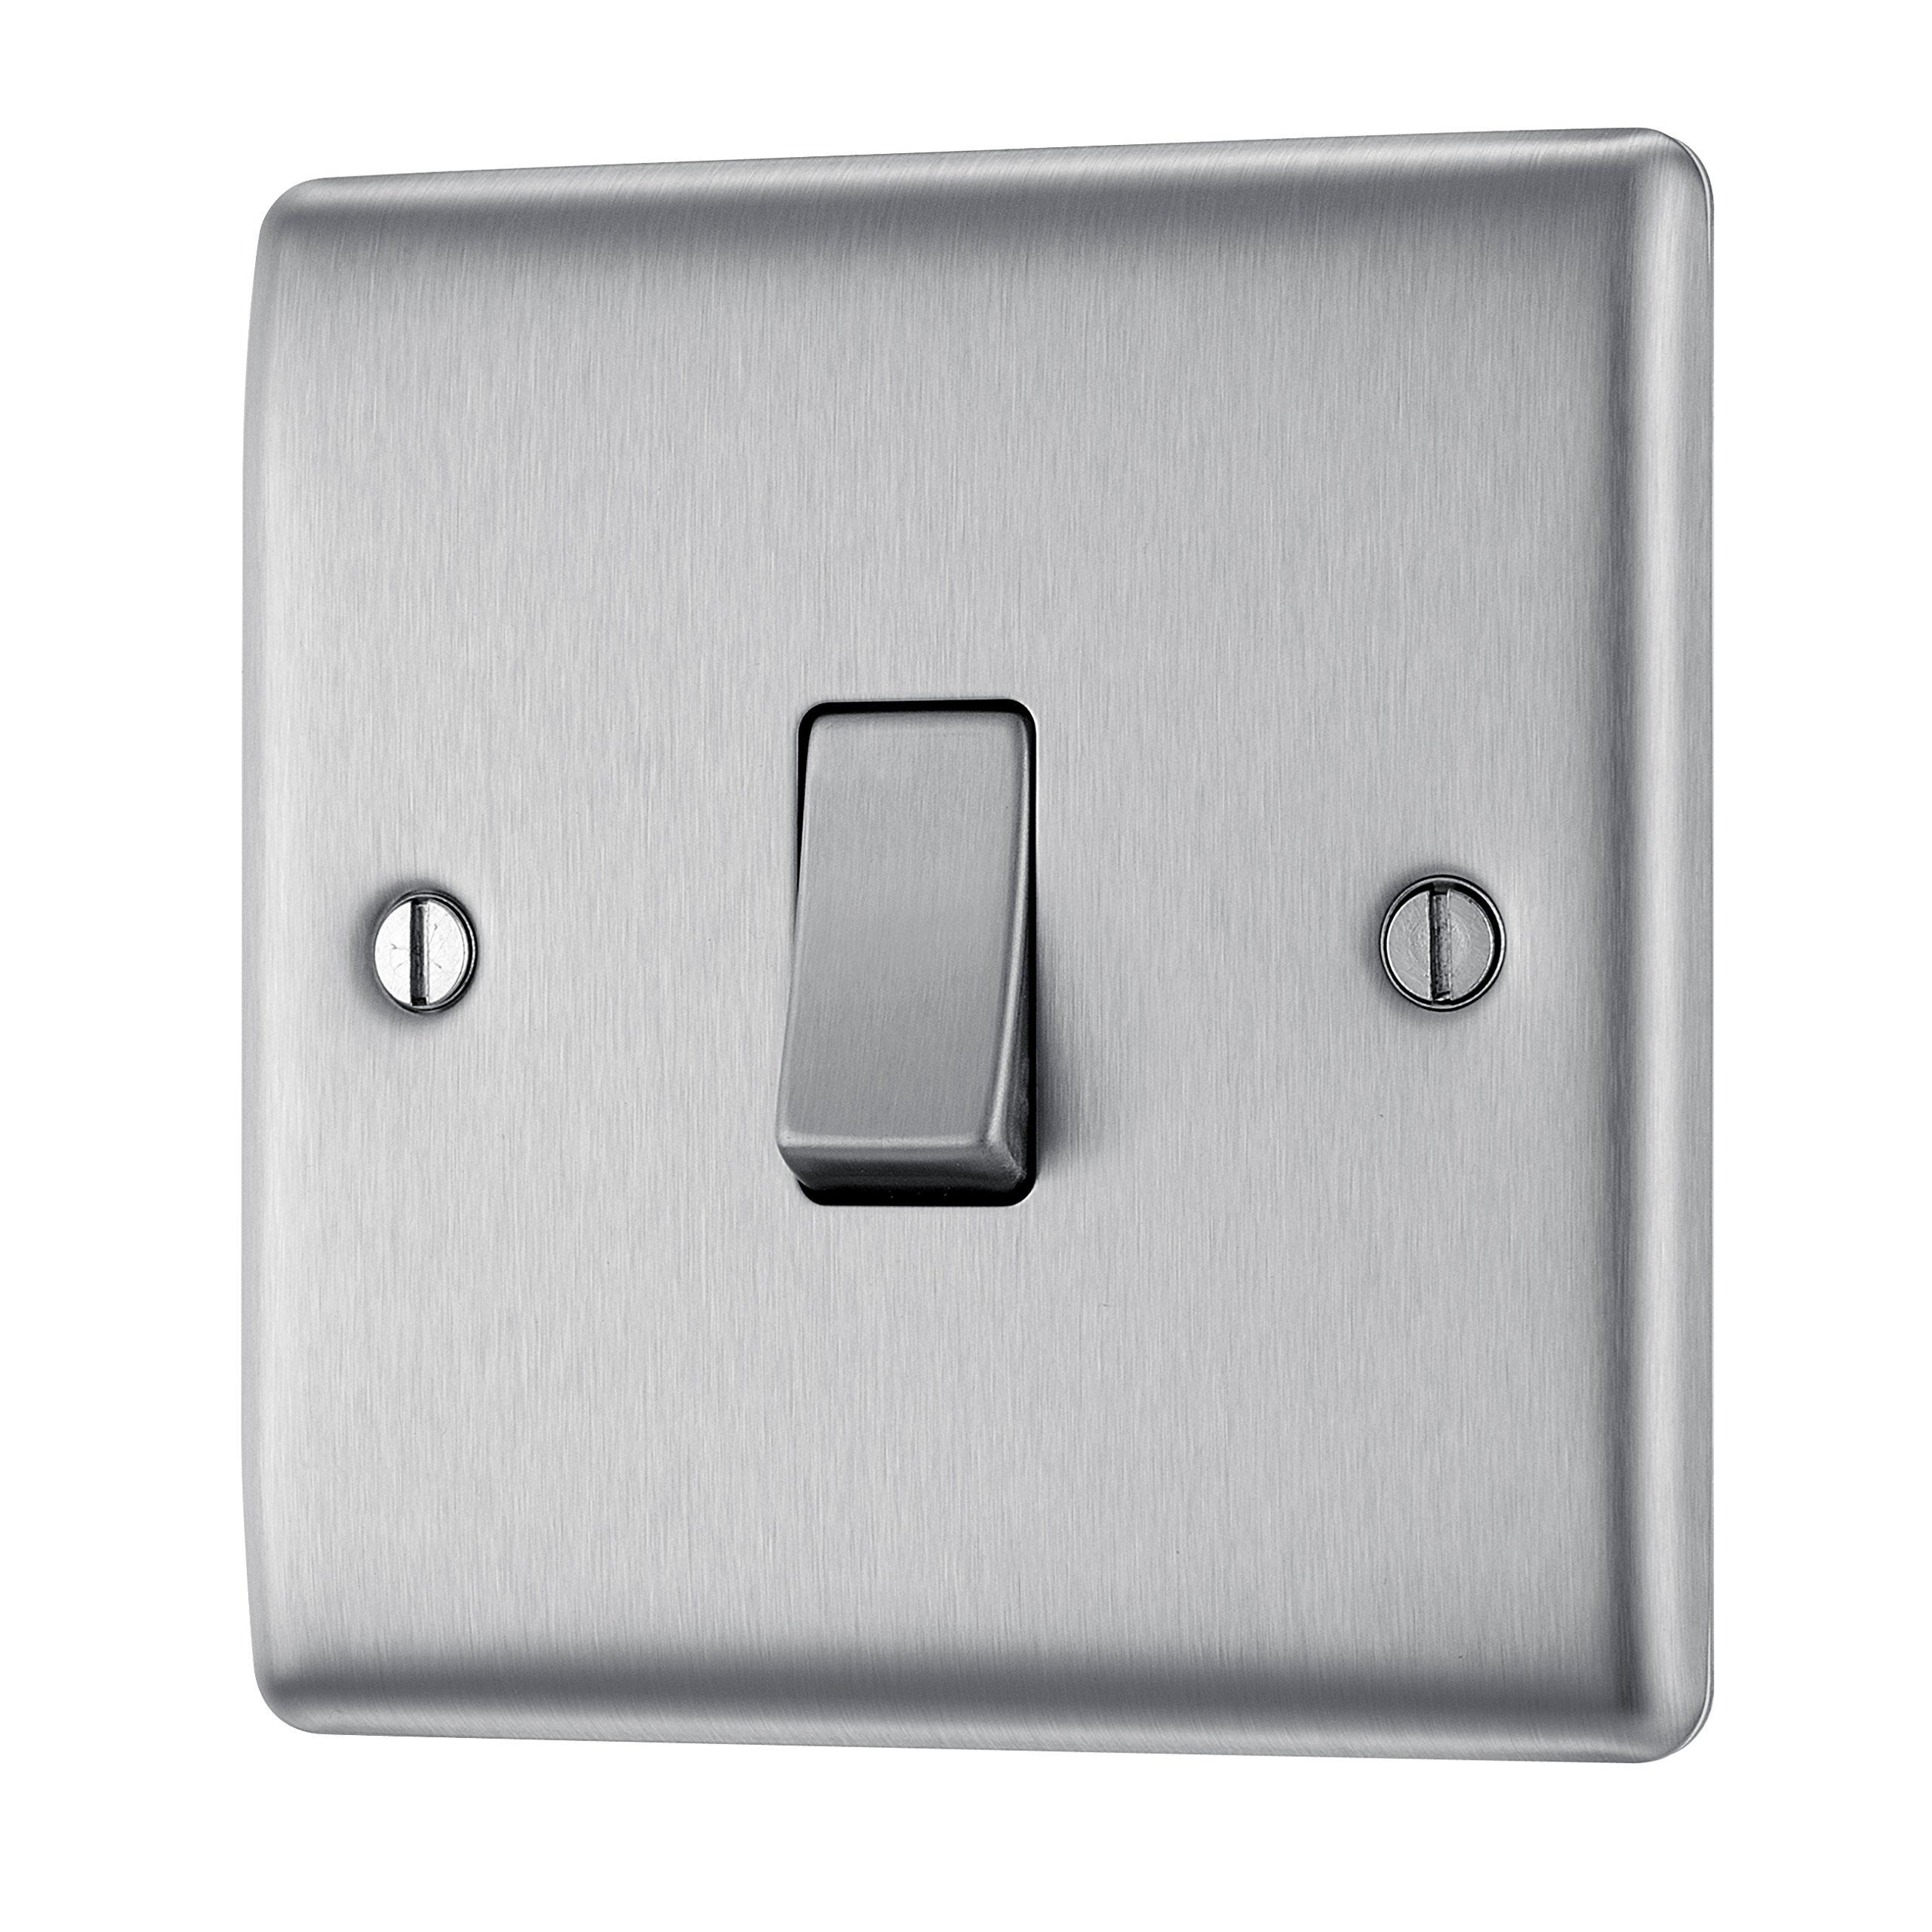 Electric Switches and Sockets: Amazon.co.uk